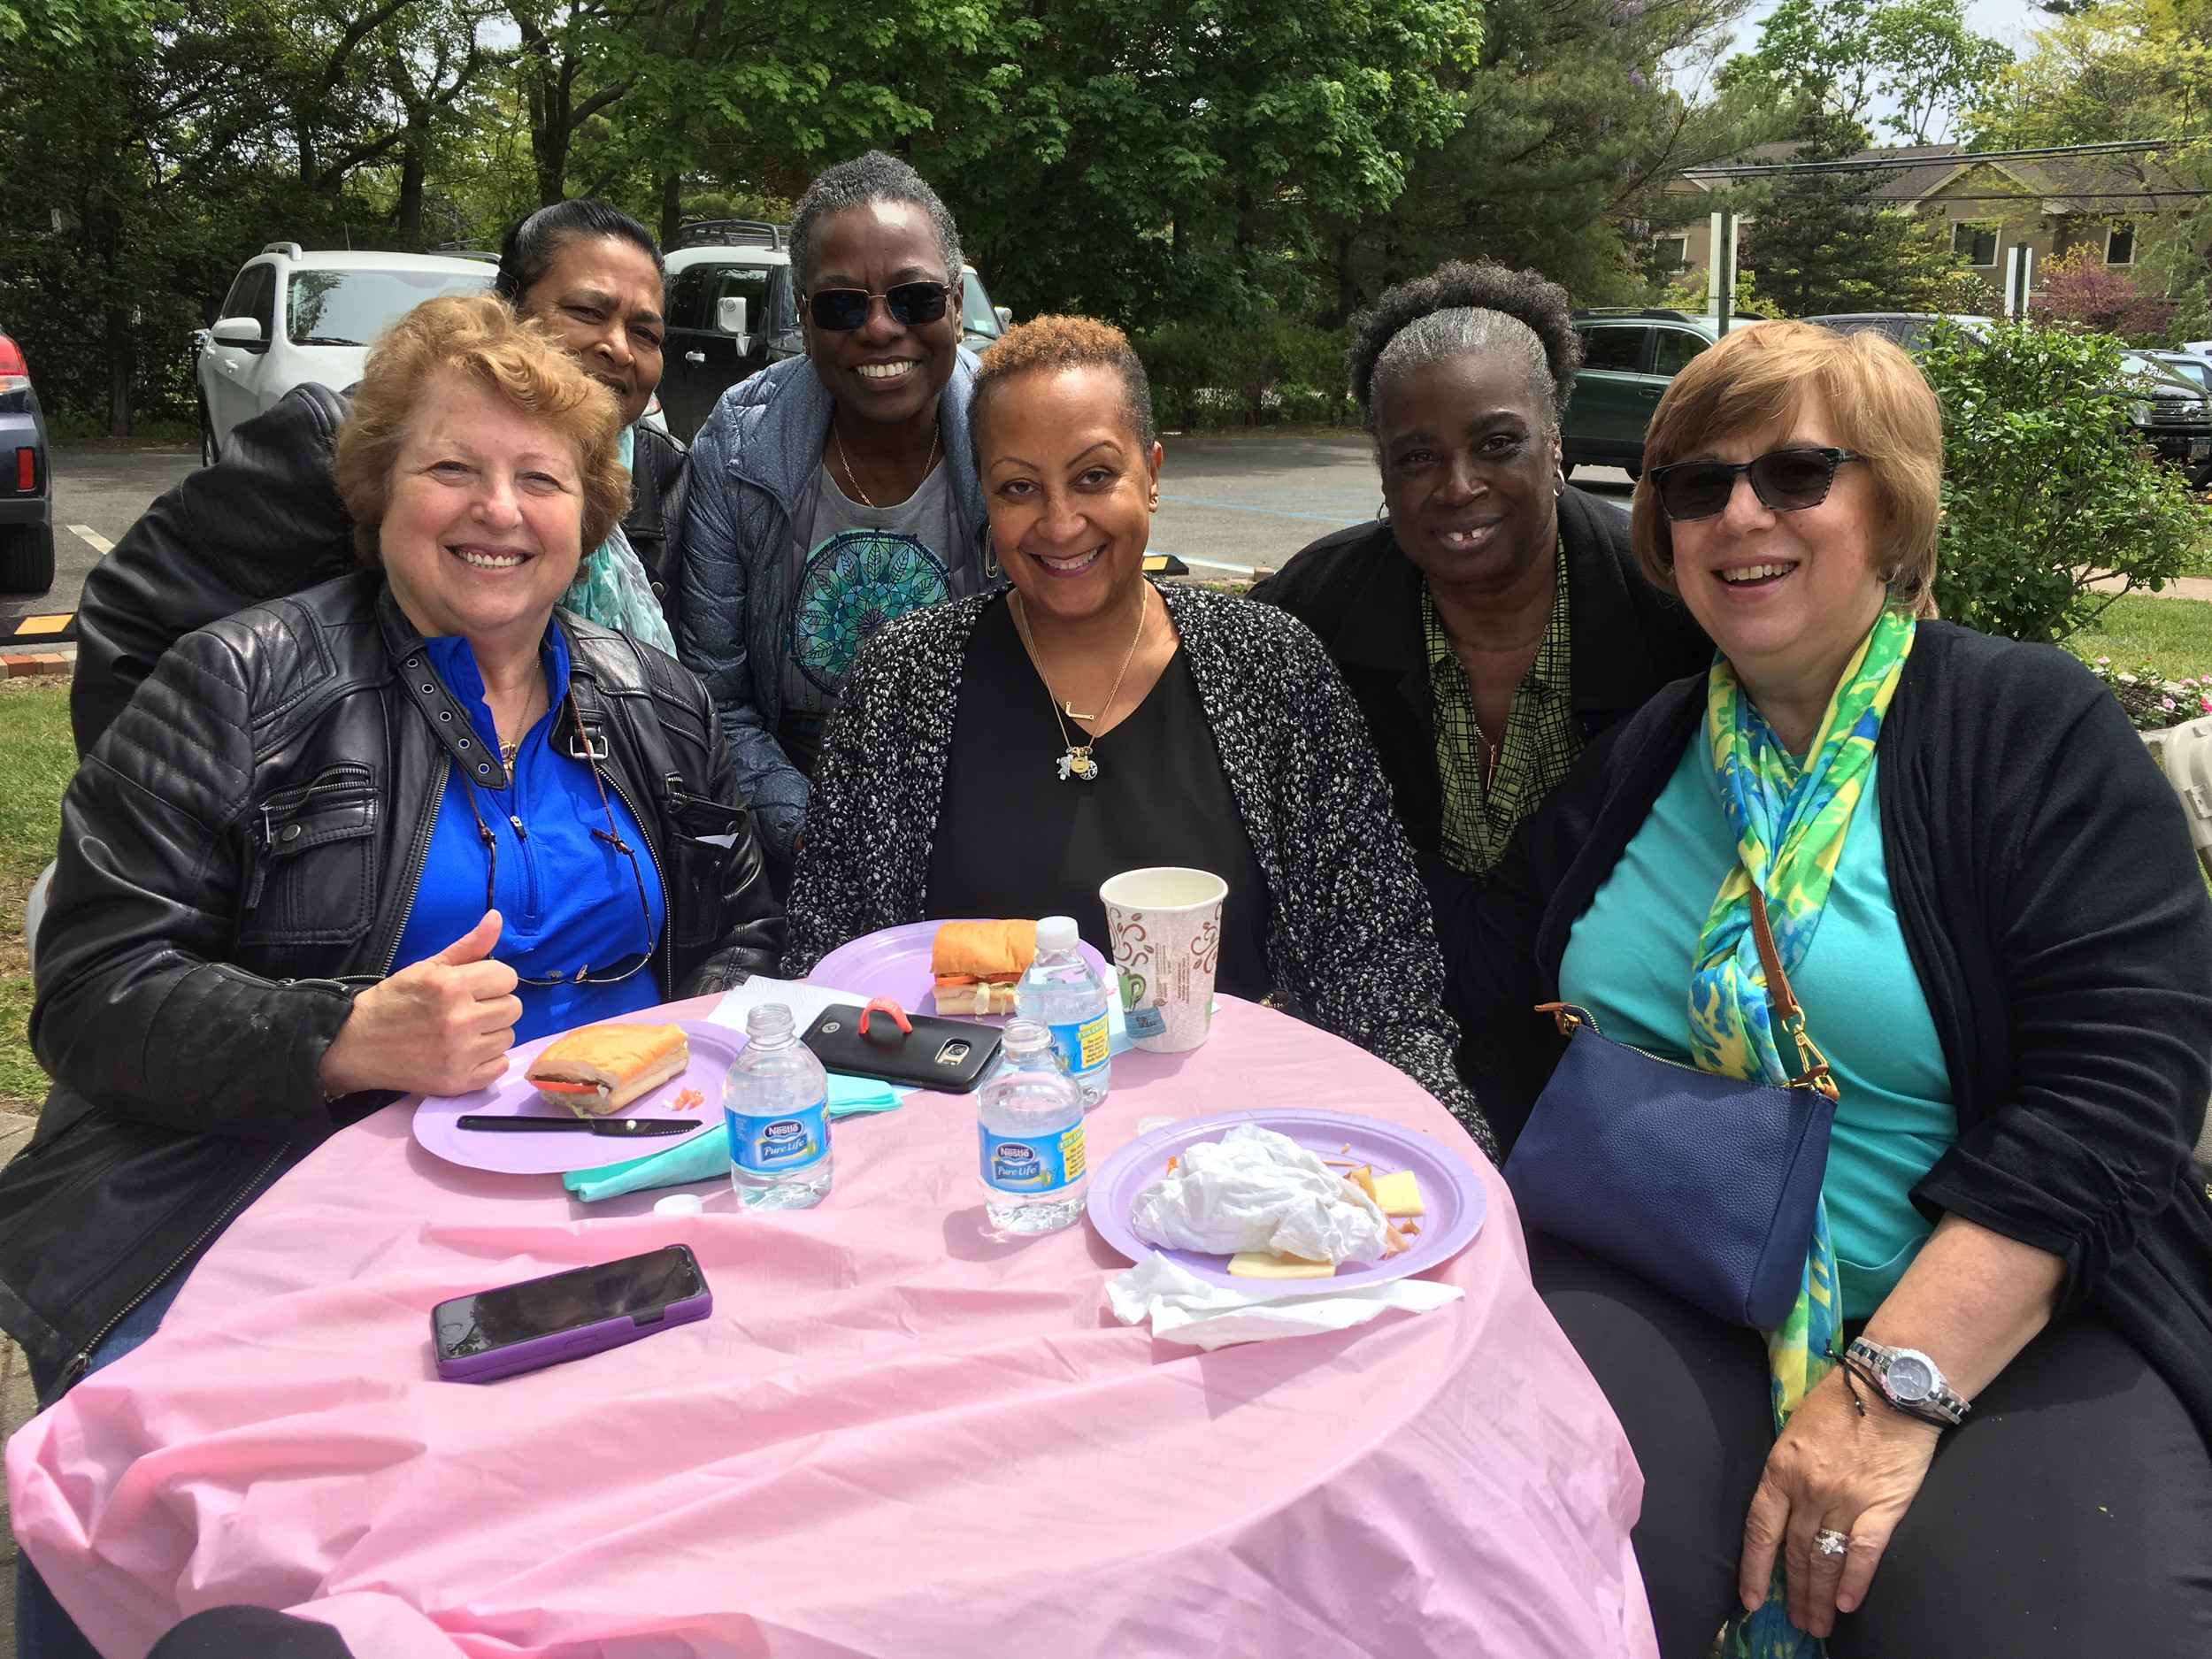 Marlene Natale, far left, a West Hempstead resident, with Nina Tribble, Nancy Coyle, Juliet King, Olivia Fox and Shirley Washington. All gather at the Hewlett House on a regular basis.